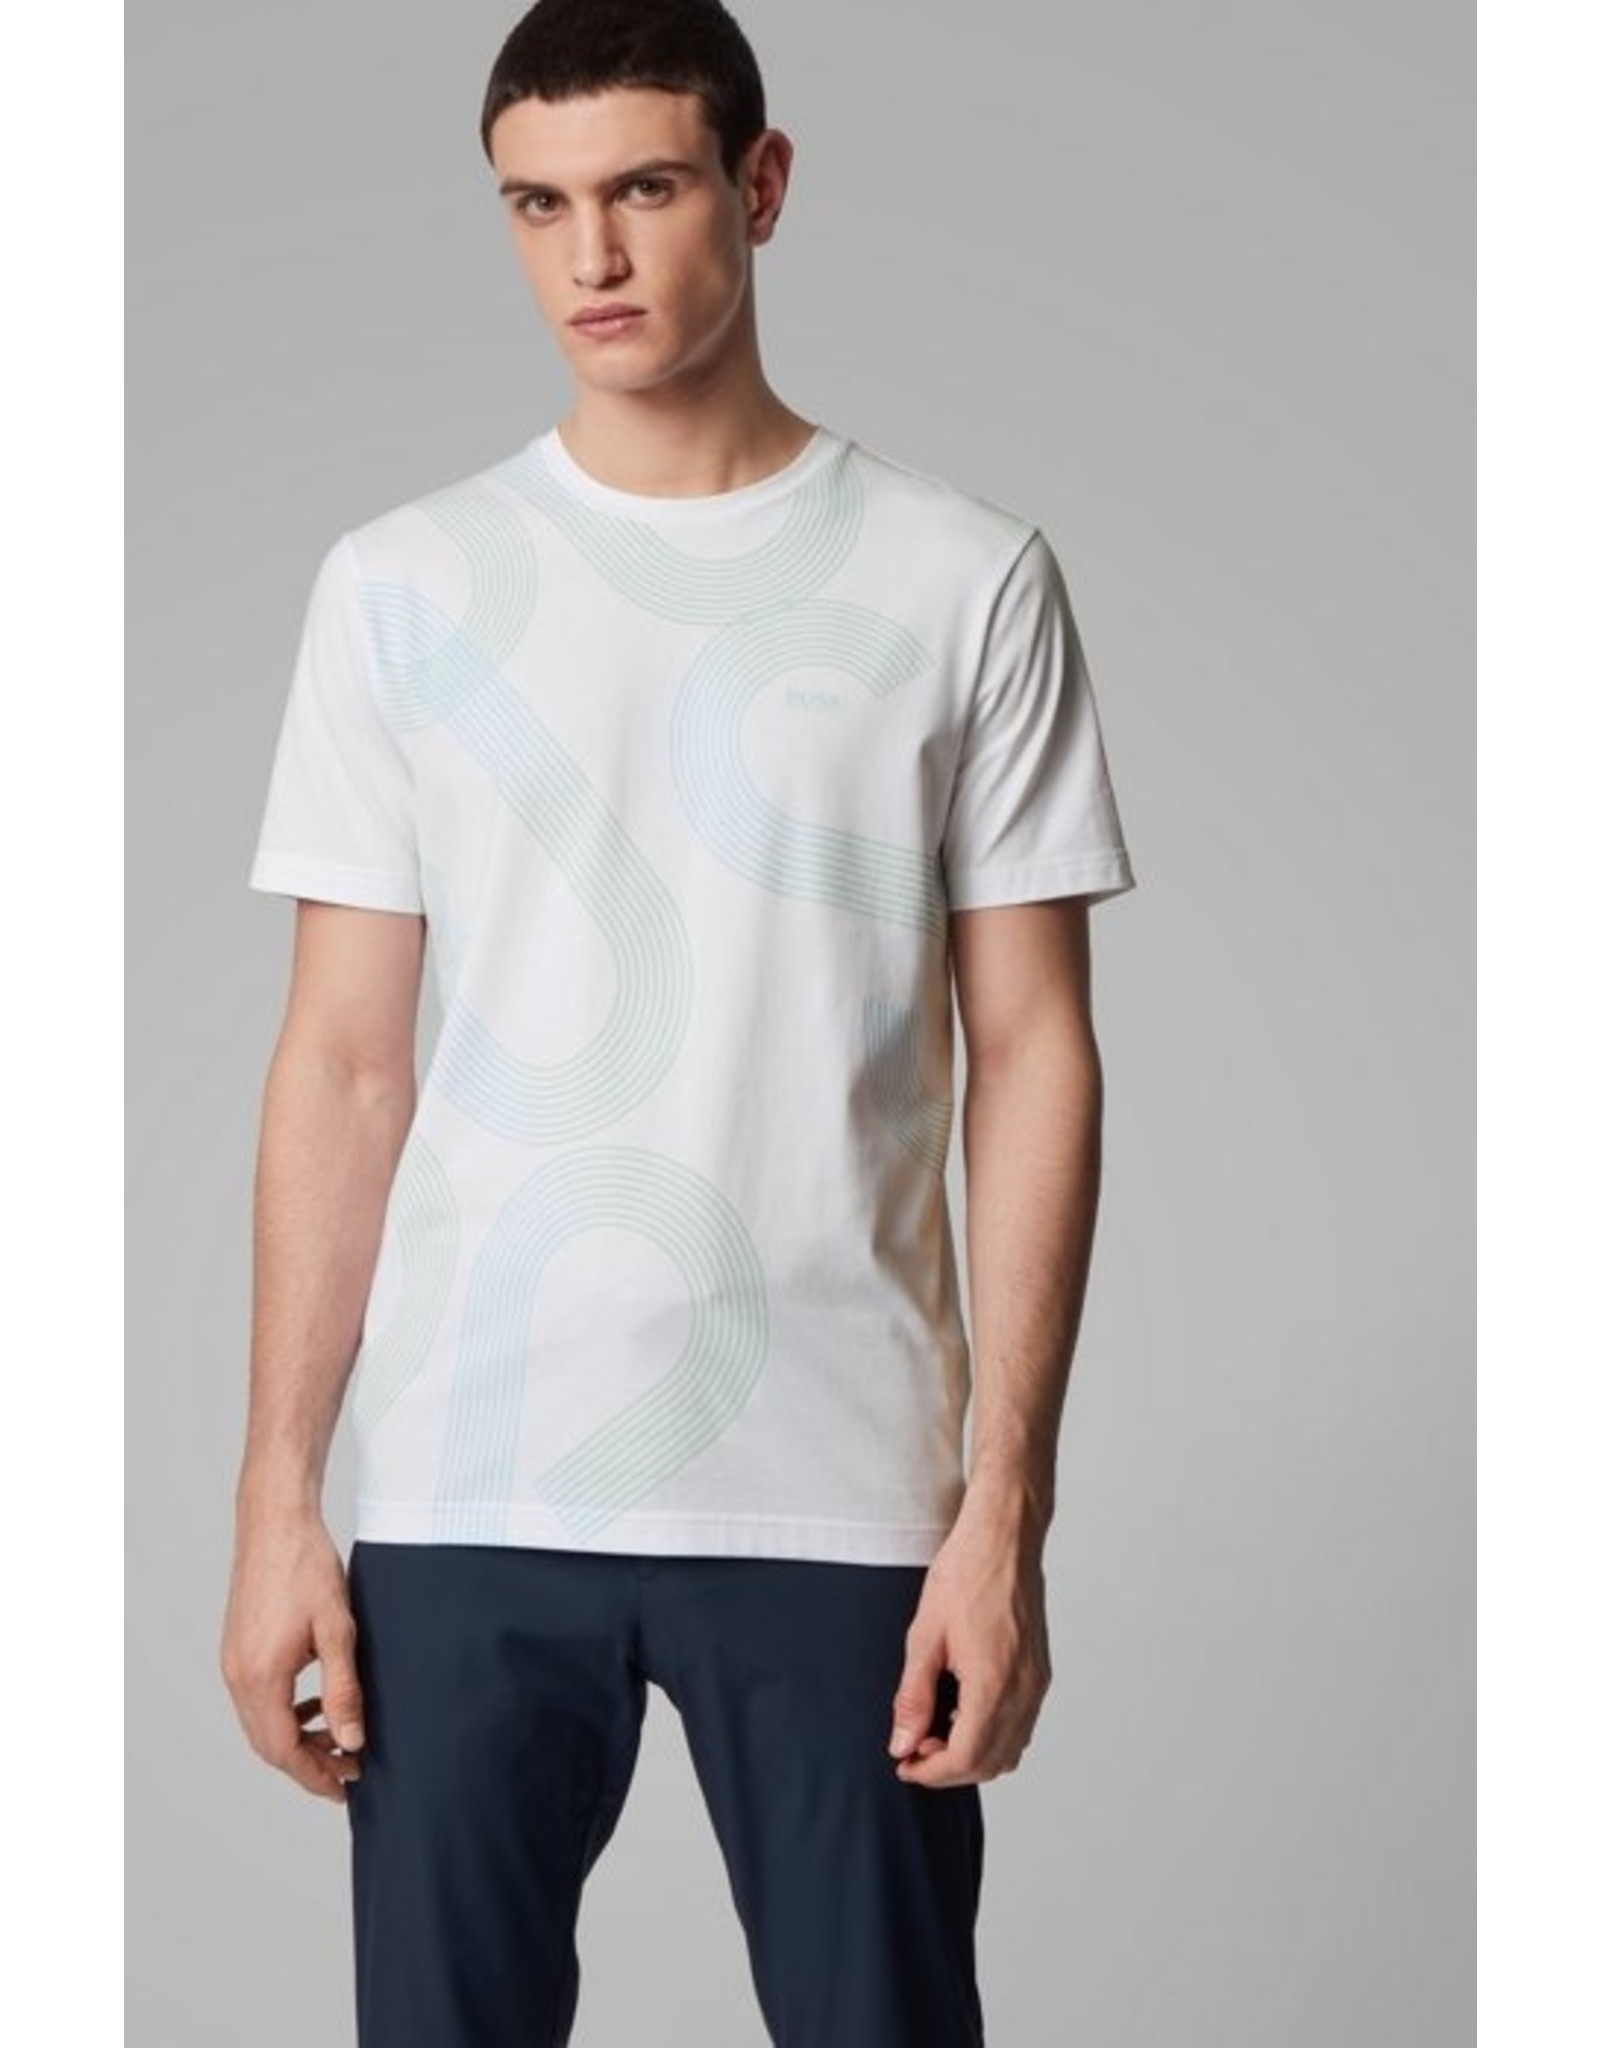 BOSS ATHLEISURE BOSS ATHLEISURE TEE 7 SS20